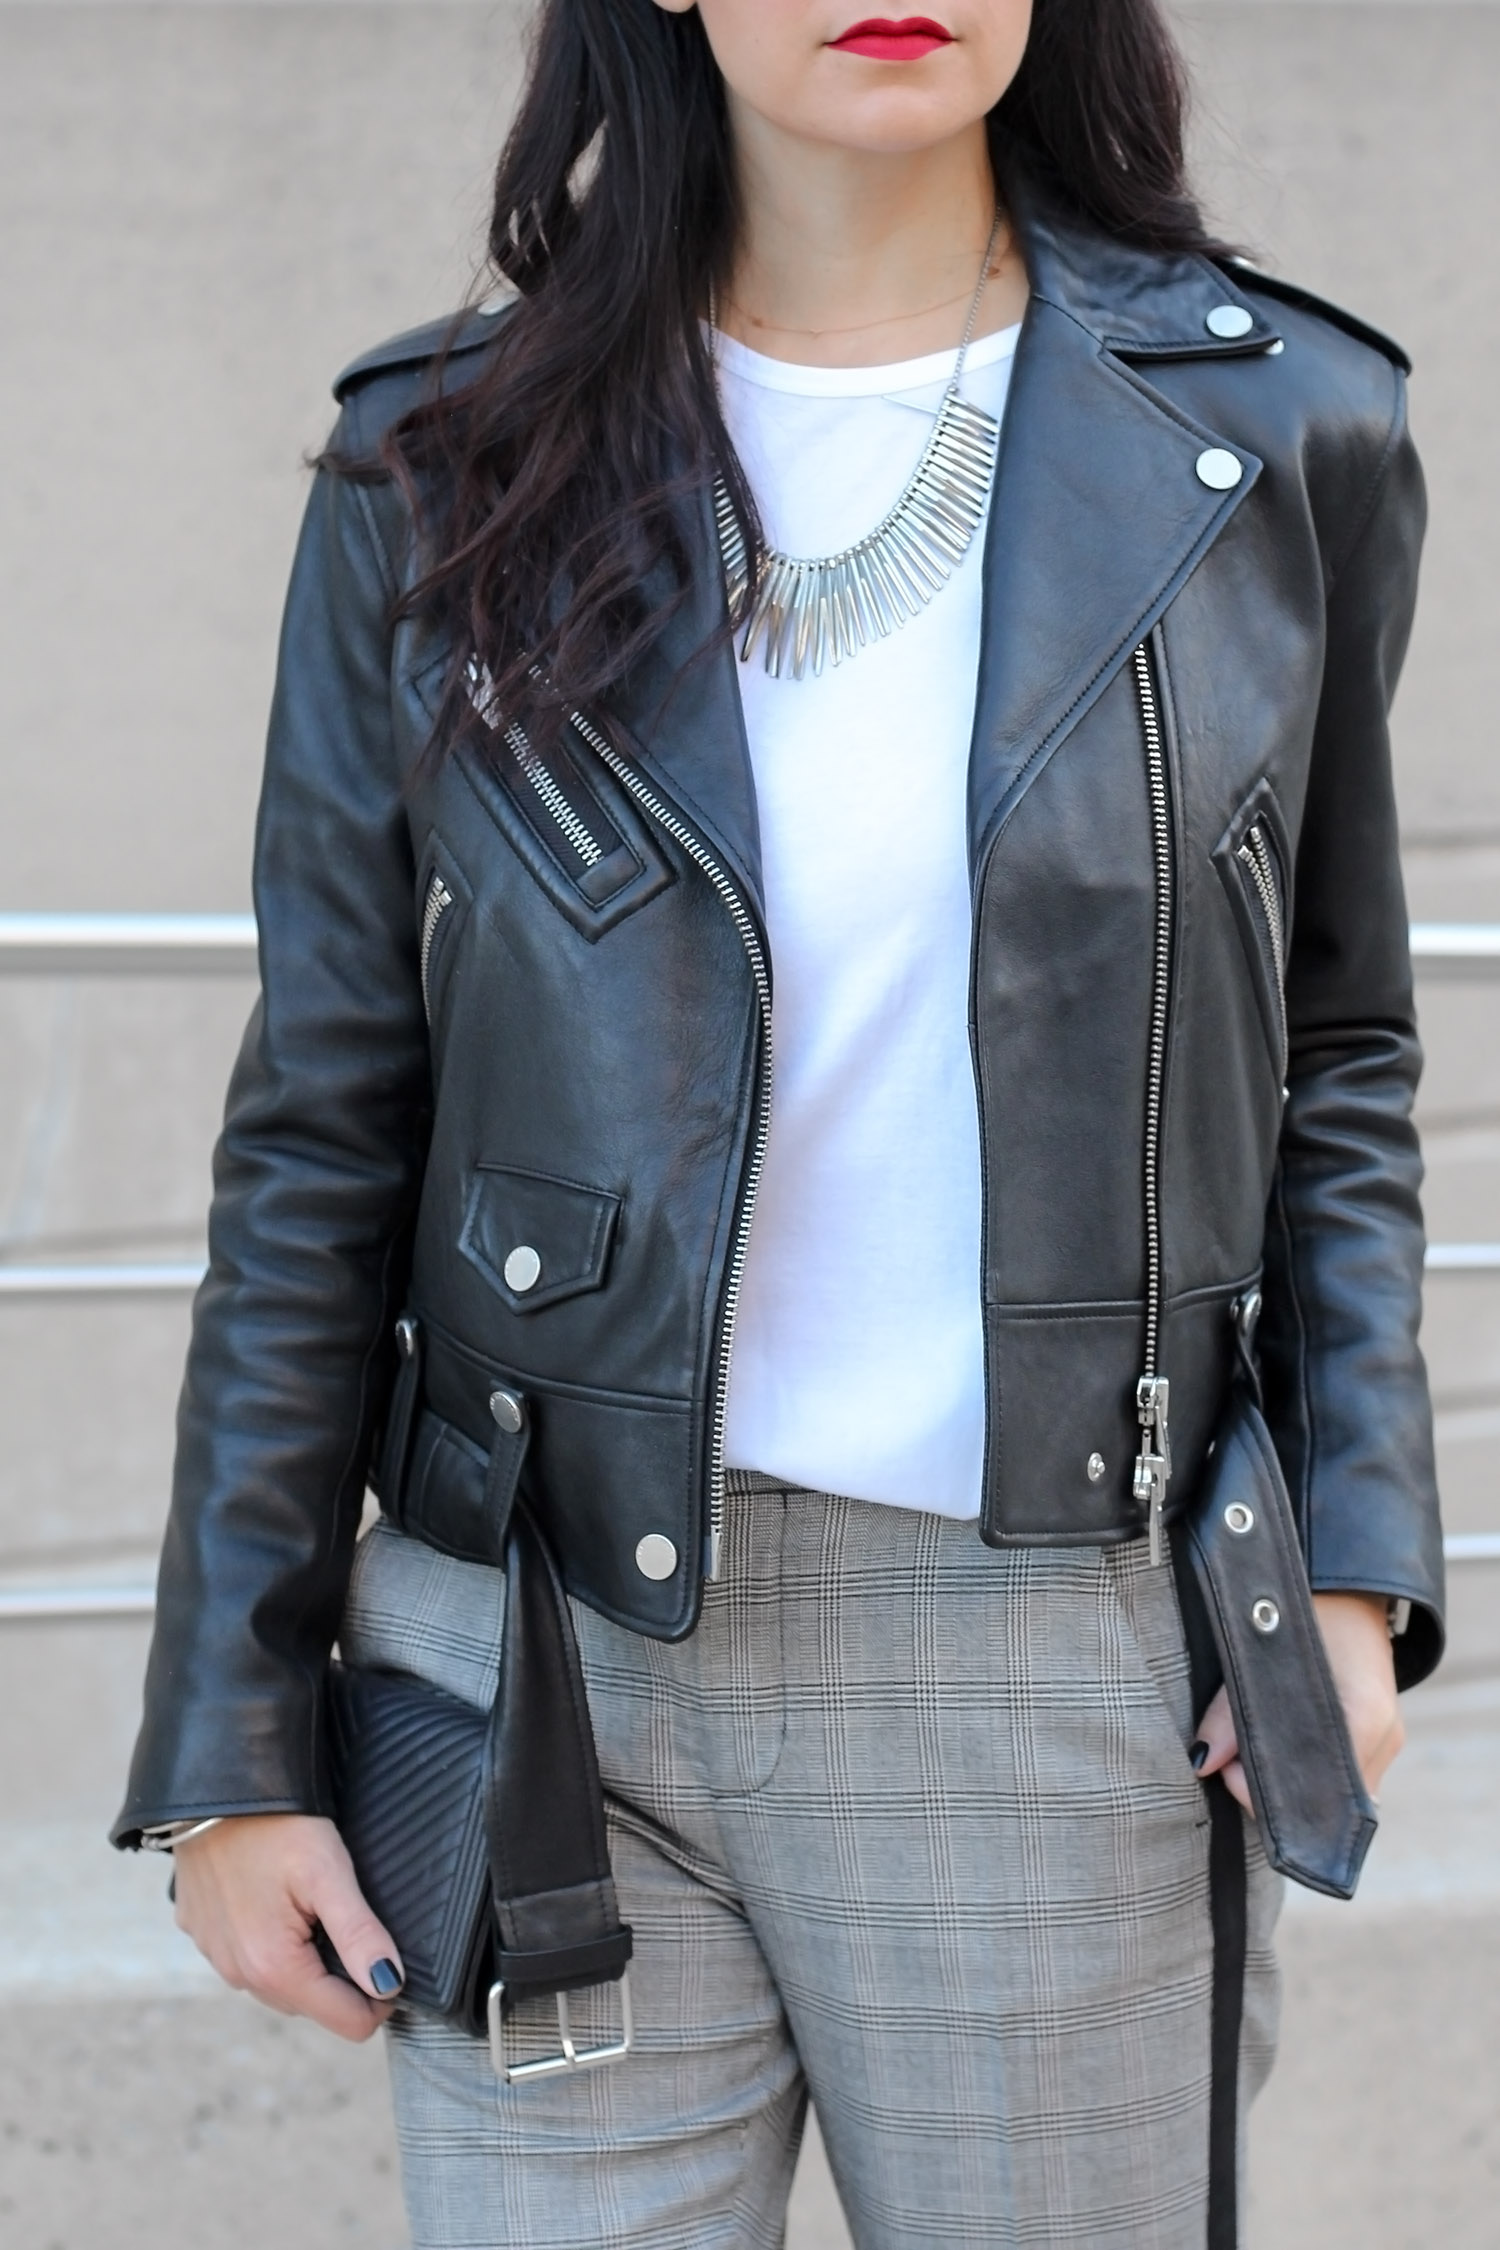 Styling a Leather Jacket